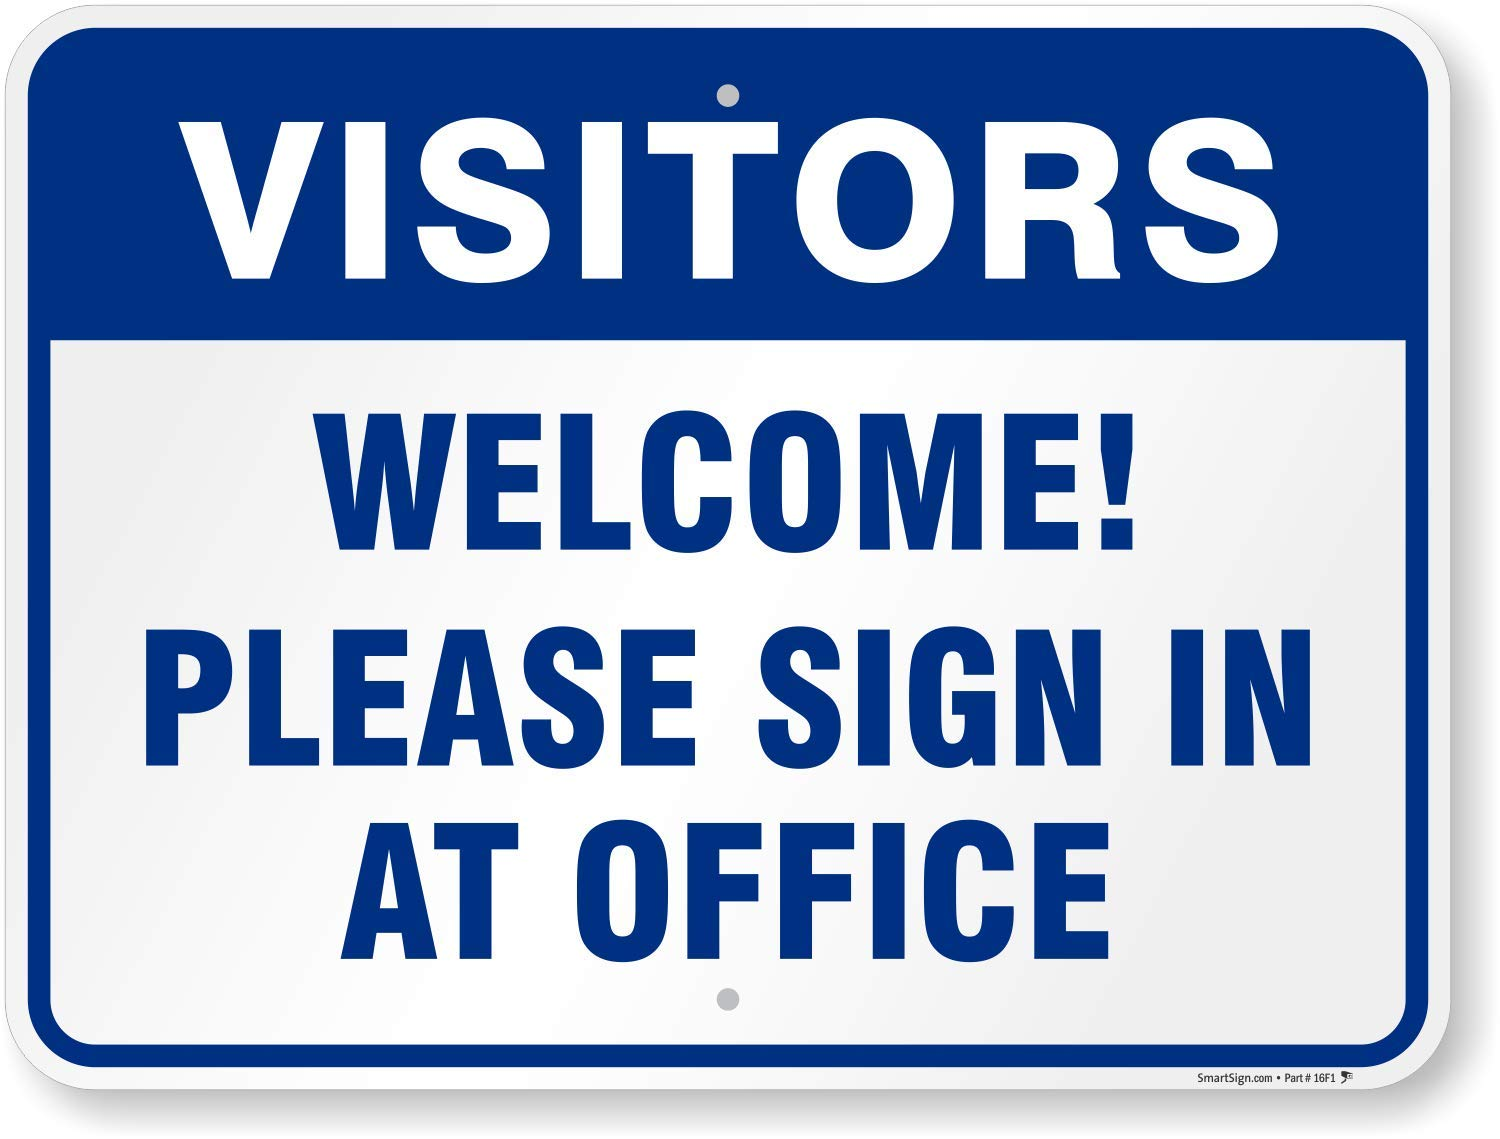 """SmartSign """"Visitors Welcome! Please Sign In At Office"""" Sign 